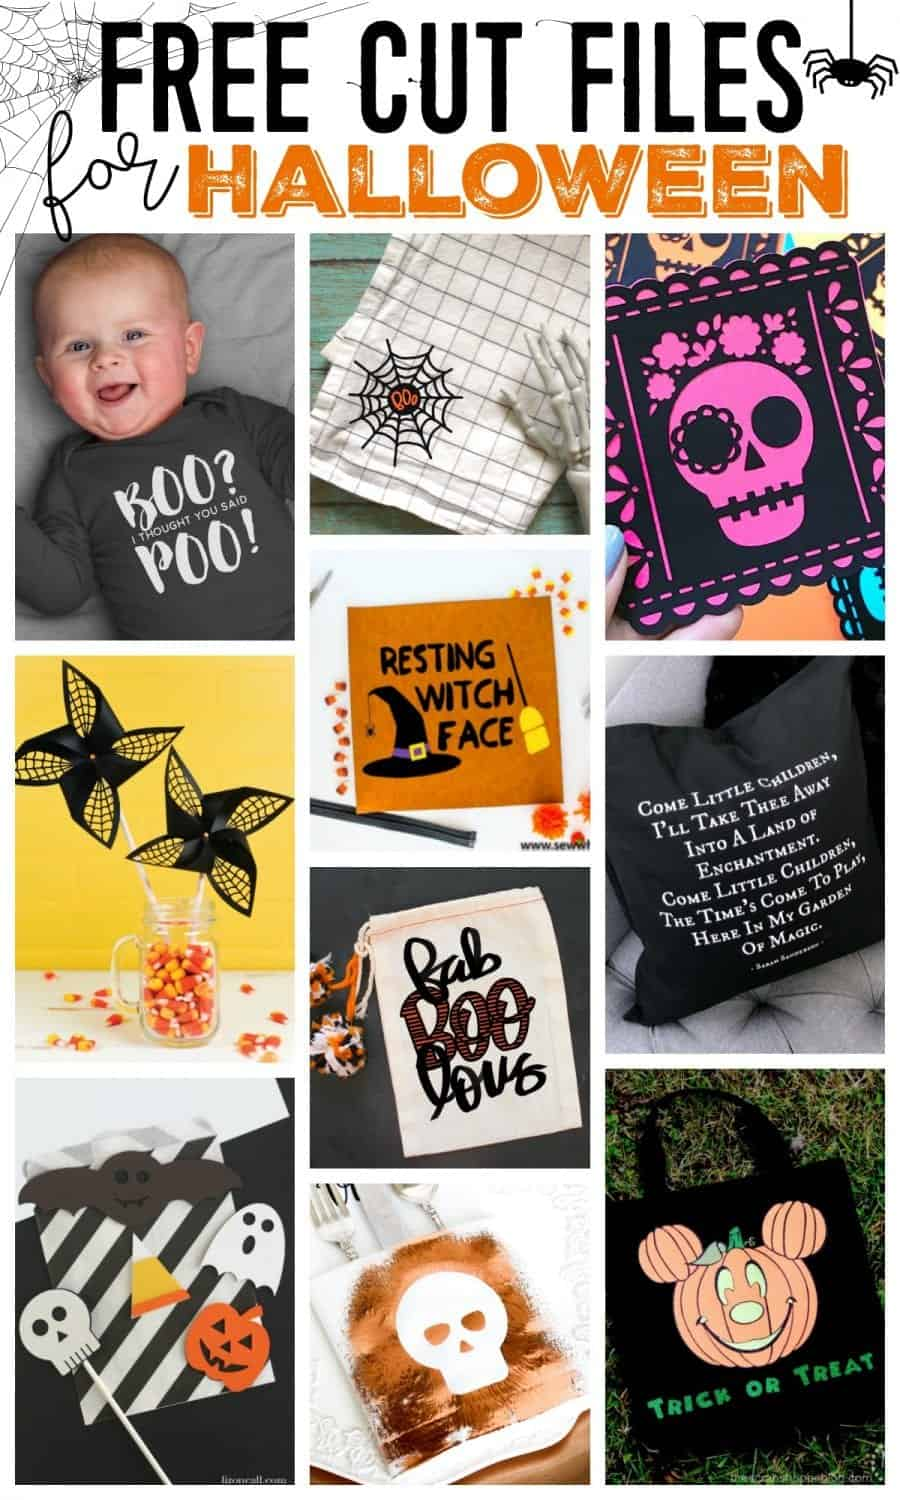 free cut file for Halloween